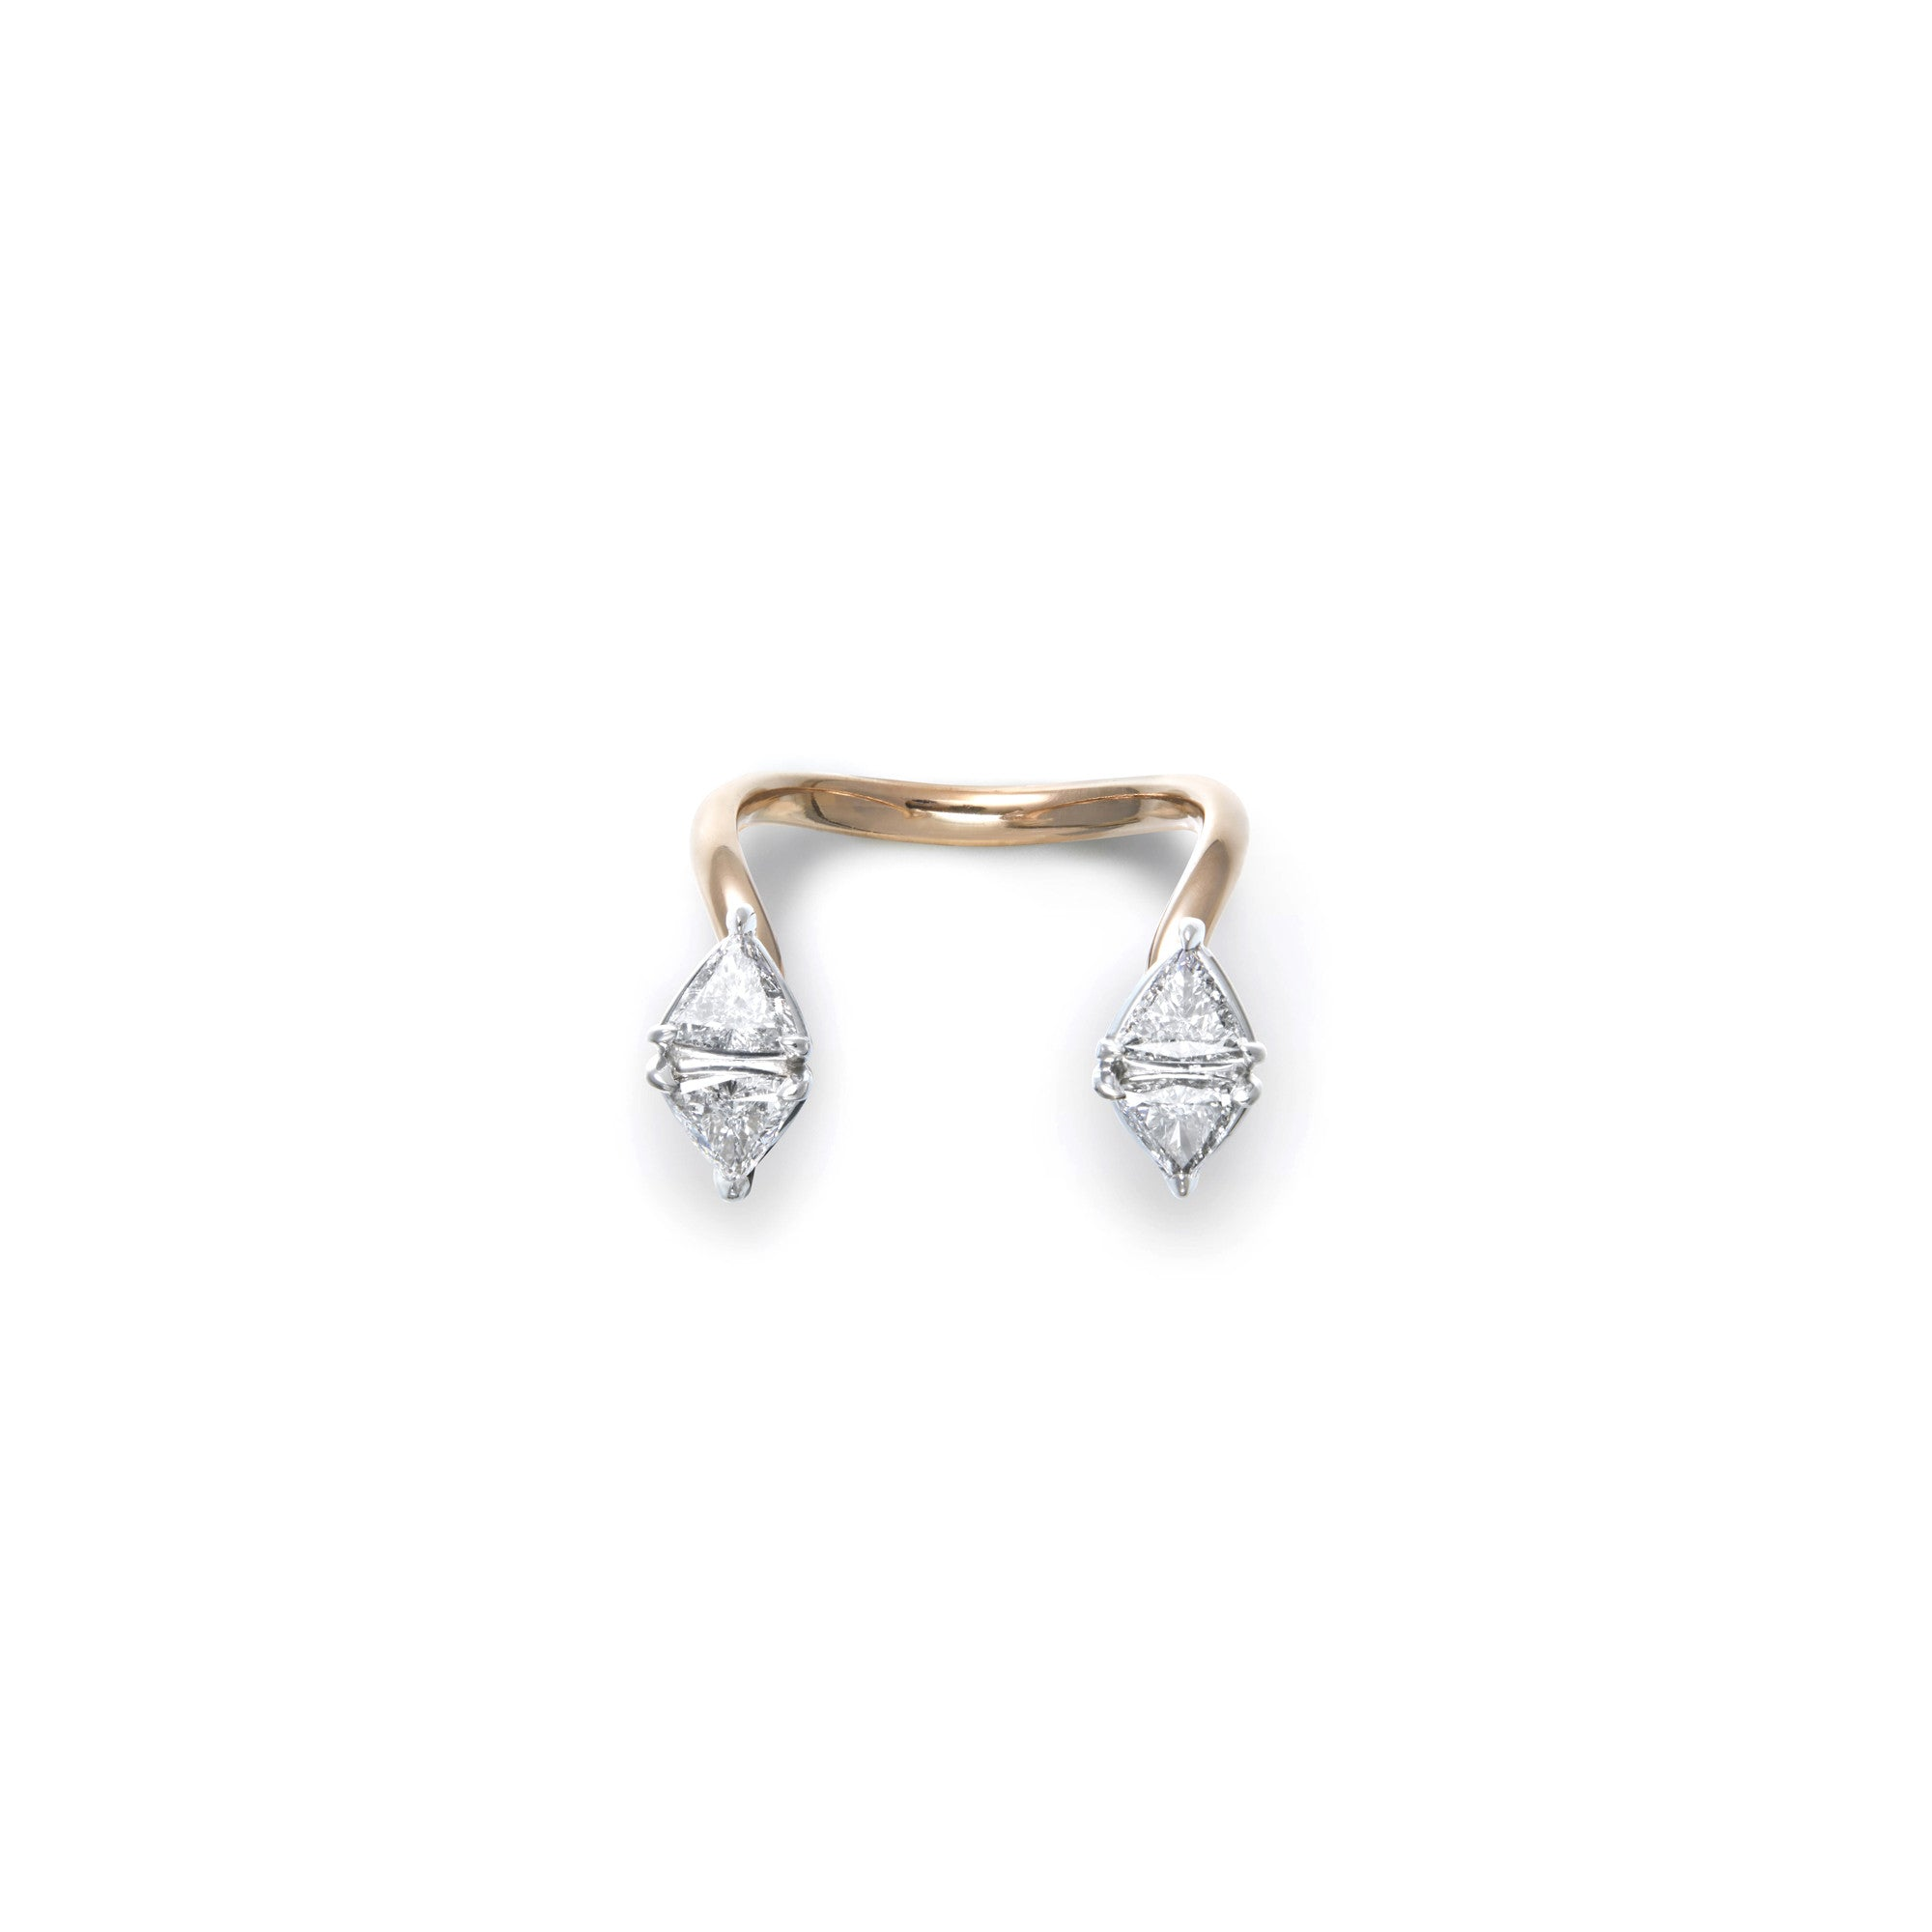 Triangle-shaped white diamonds floating cuffs